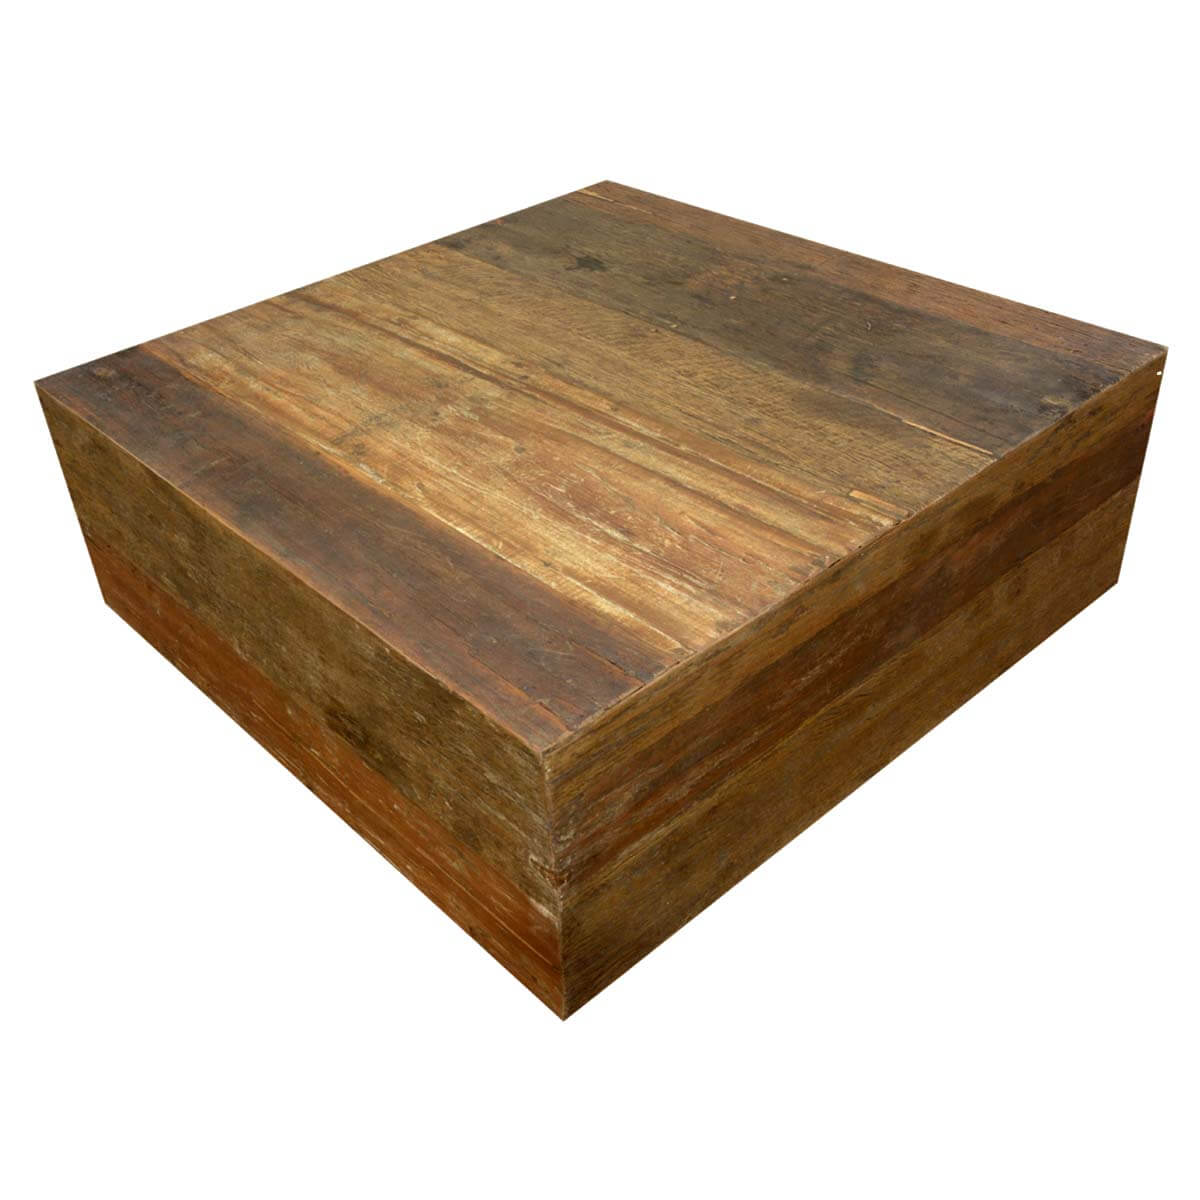 Appalachian Rustic Old Wood Square Box Style Coffee Table